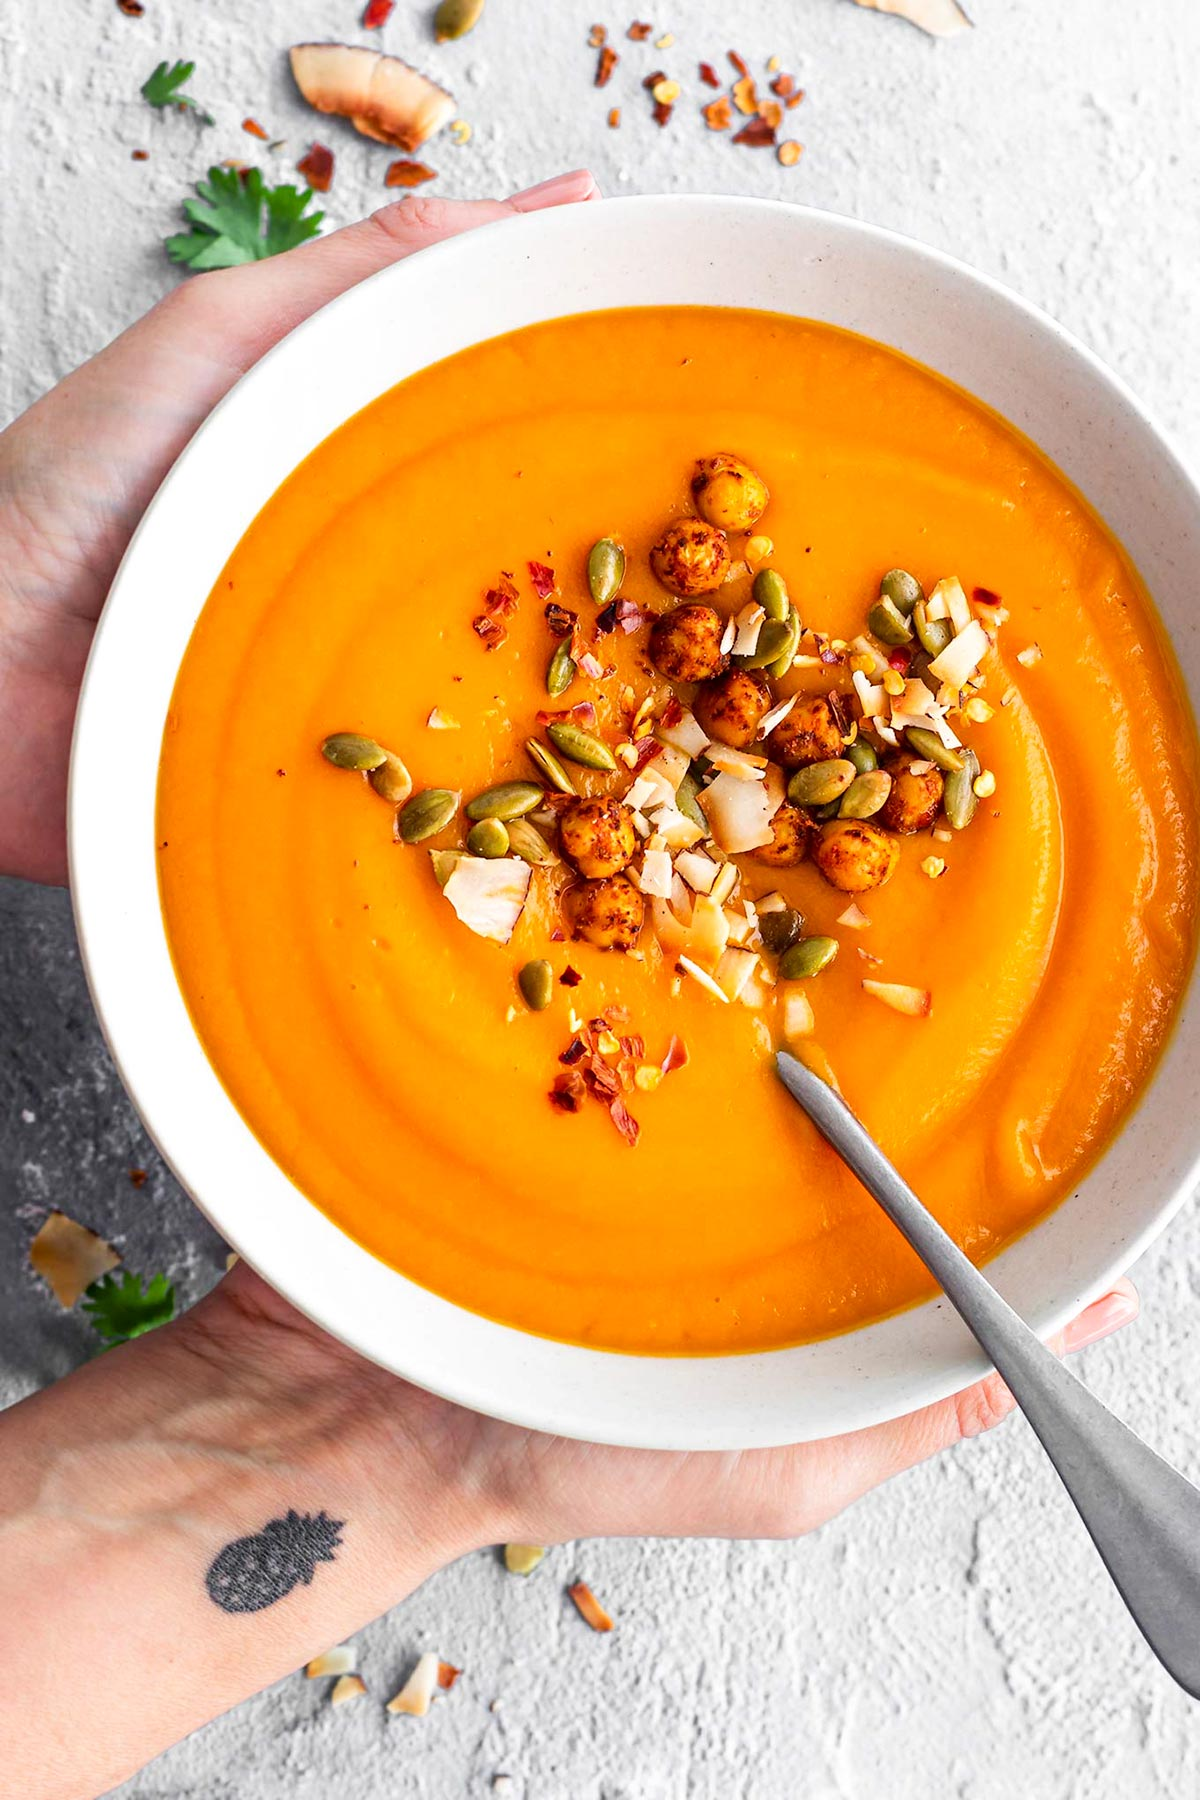 Hands holding a bowl of sweet potato soup garnished with roasted chickpeas, toasted coconut flakes, roasted pumpkin seeds, and red pepper flakes.  Top view